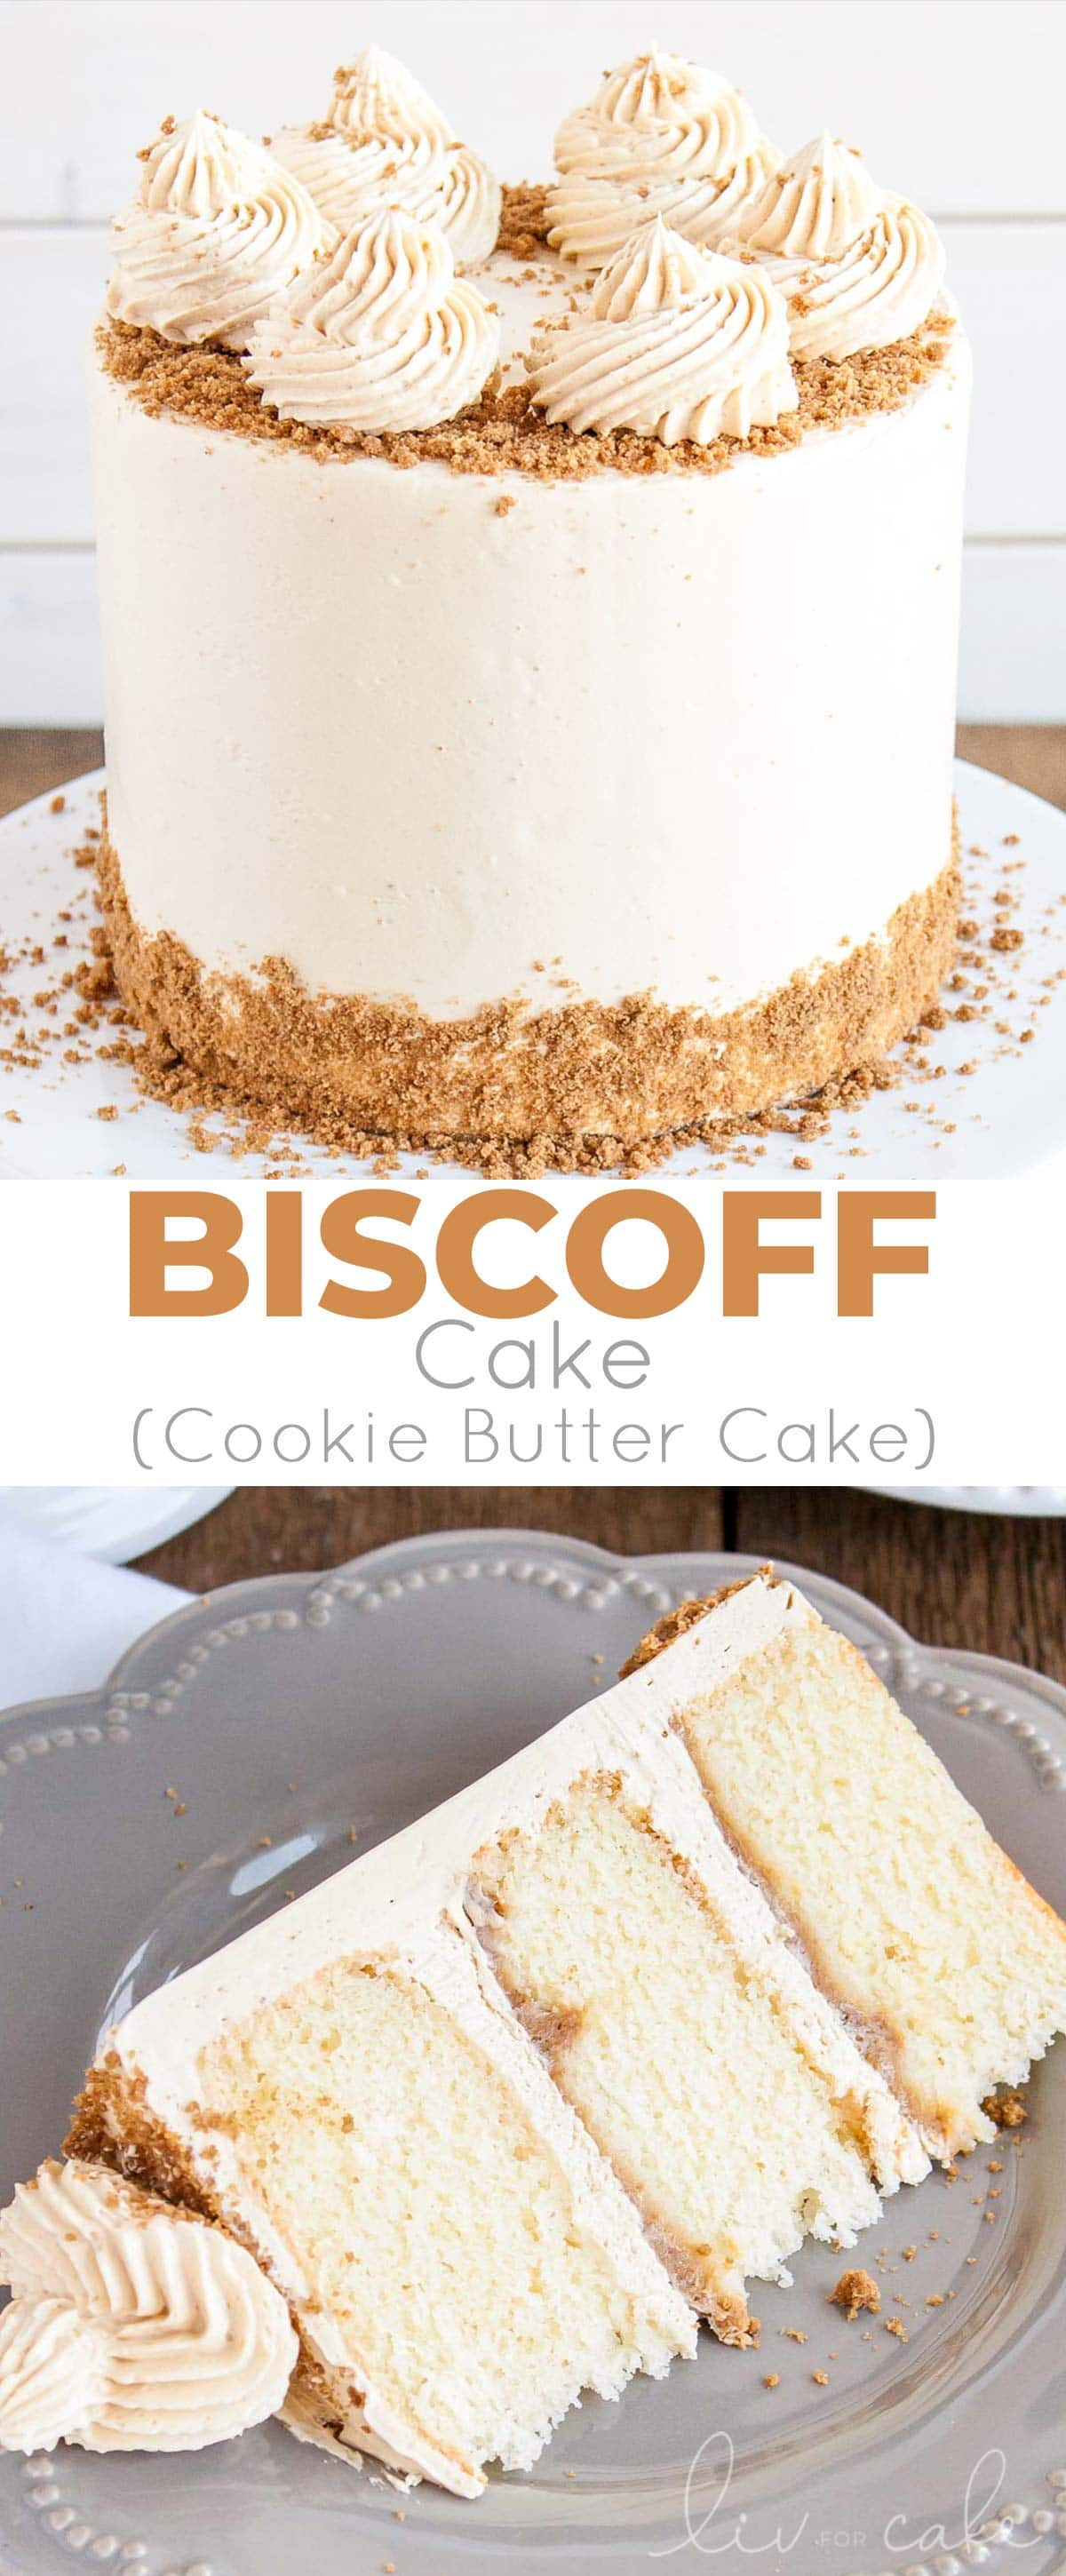 Biscoff cake photo collage